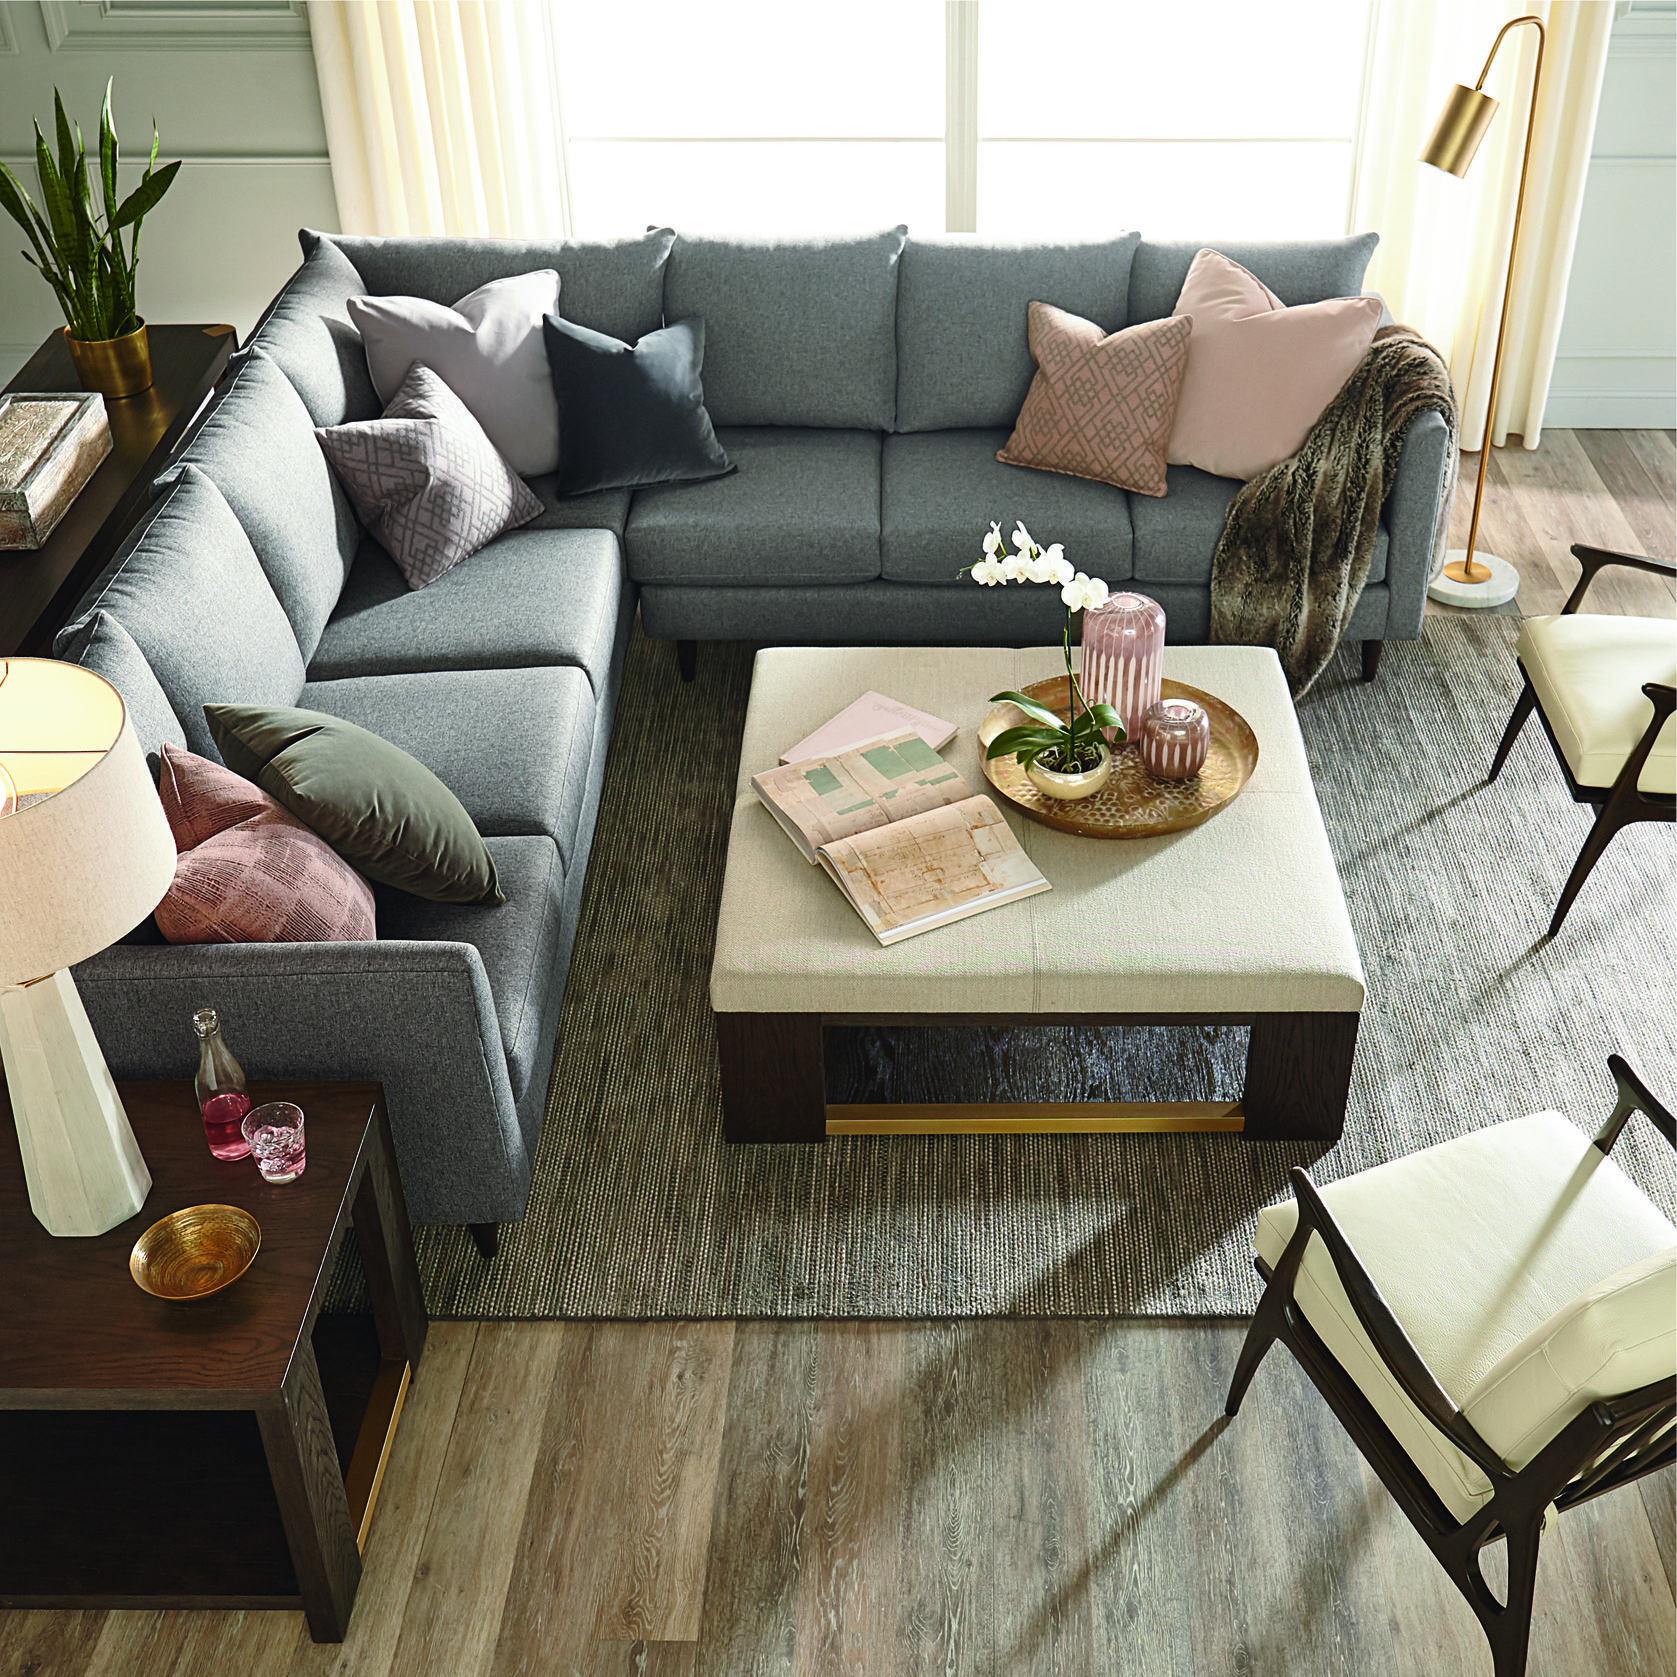 The Best Coffee Table Decorating Ideas Furniture Store Design Living Room Seating L Shaped Couch